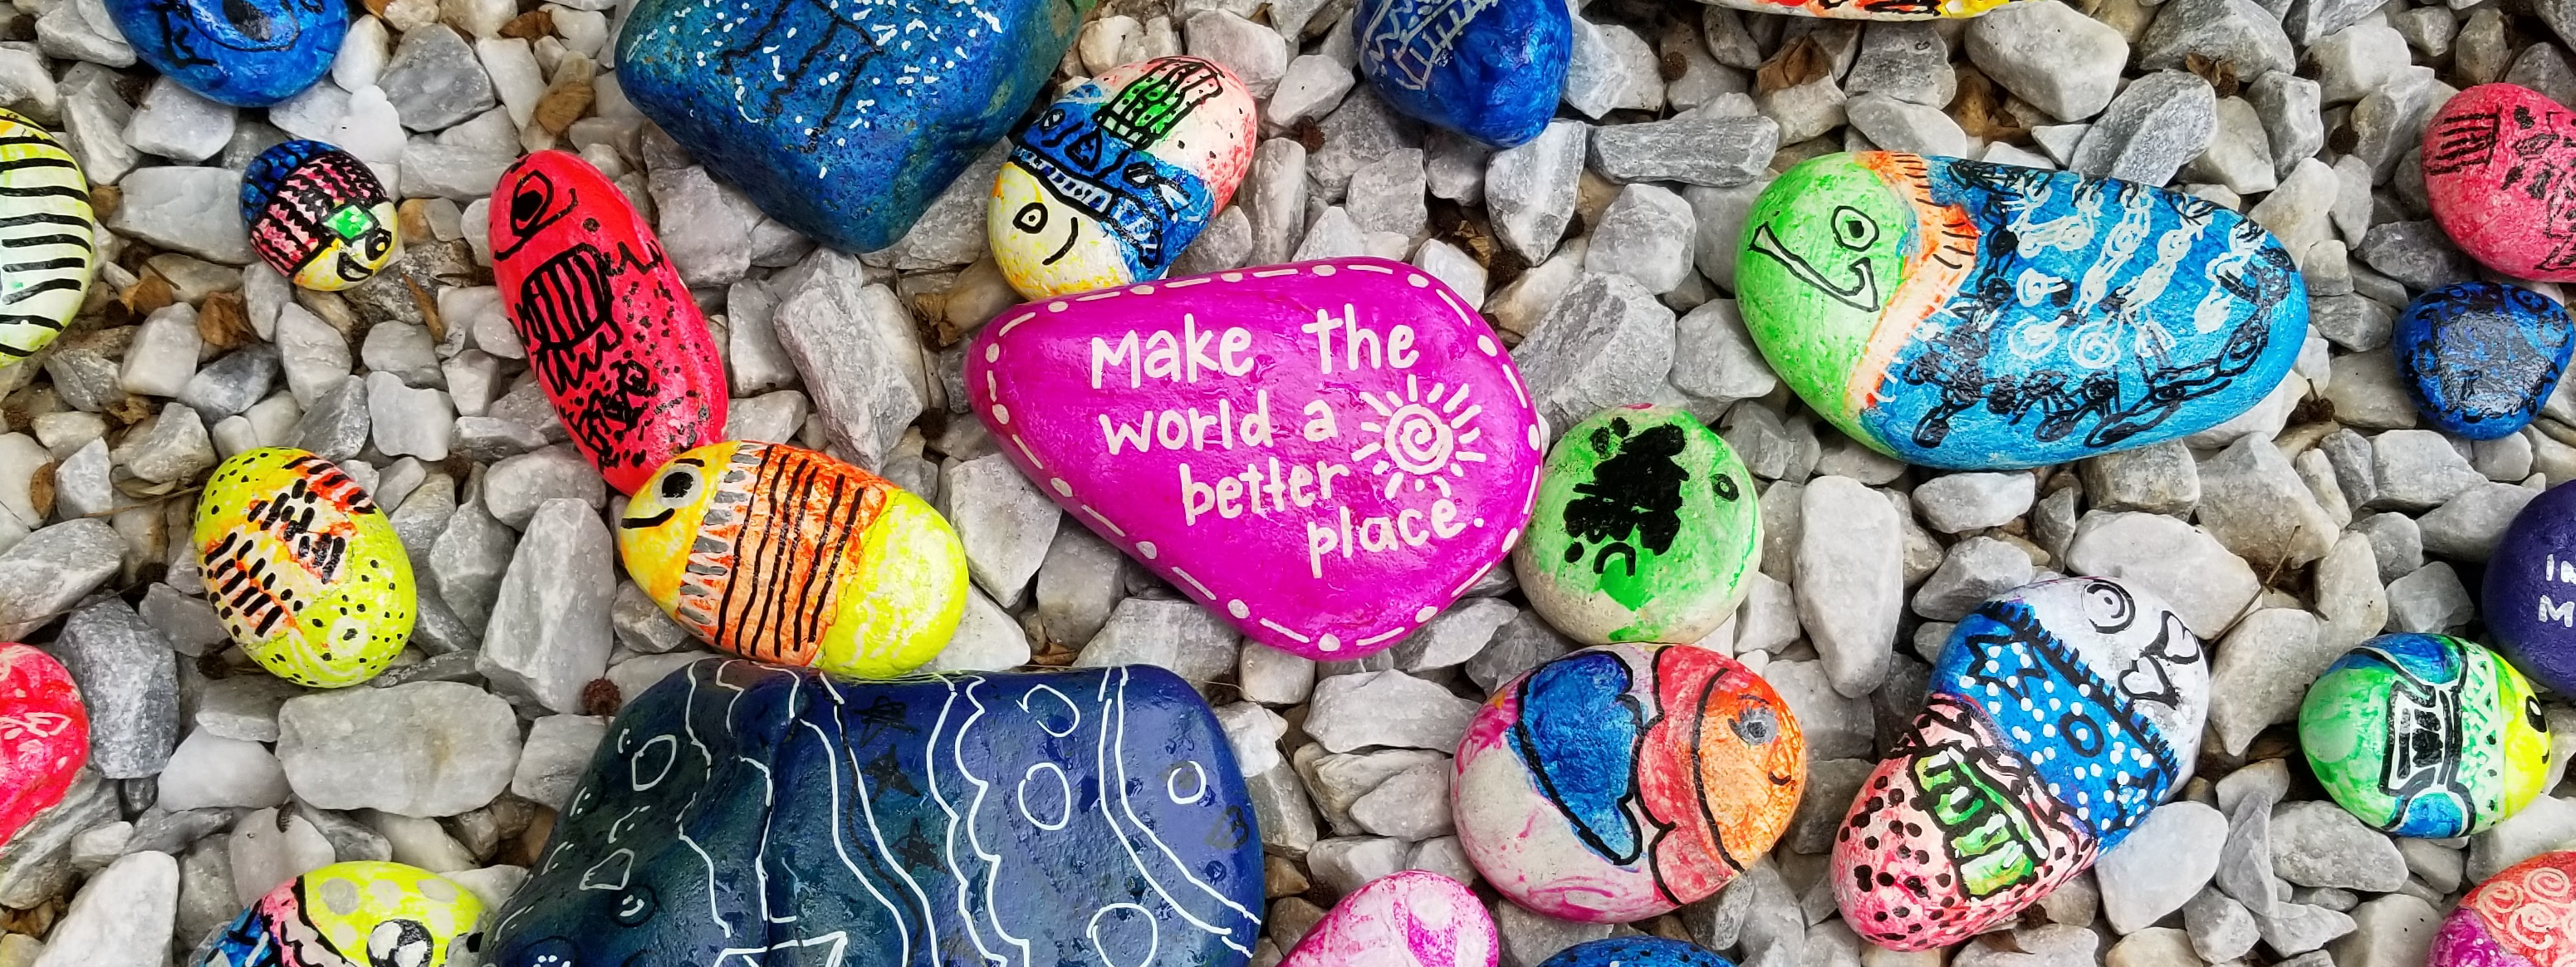 Make-the-world-a-better-place